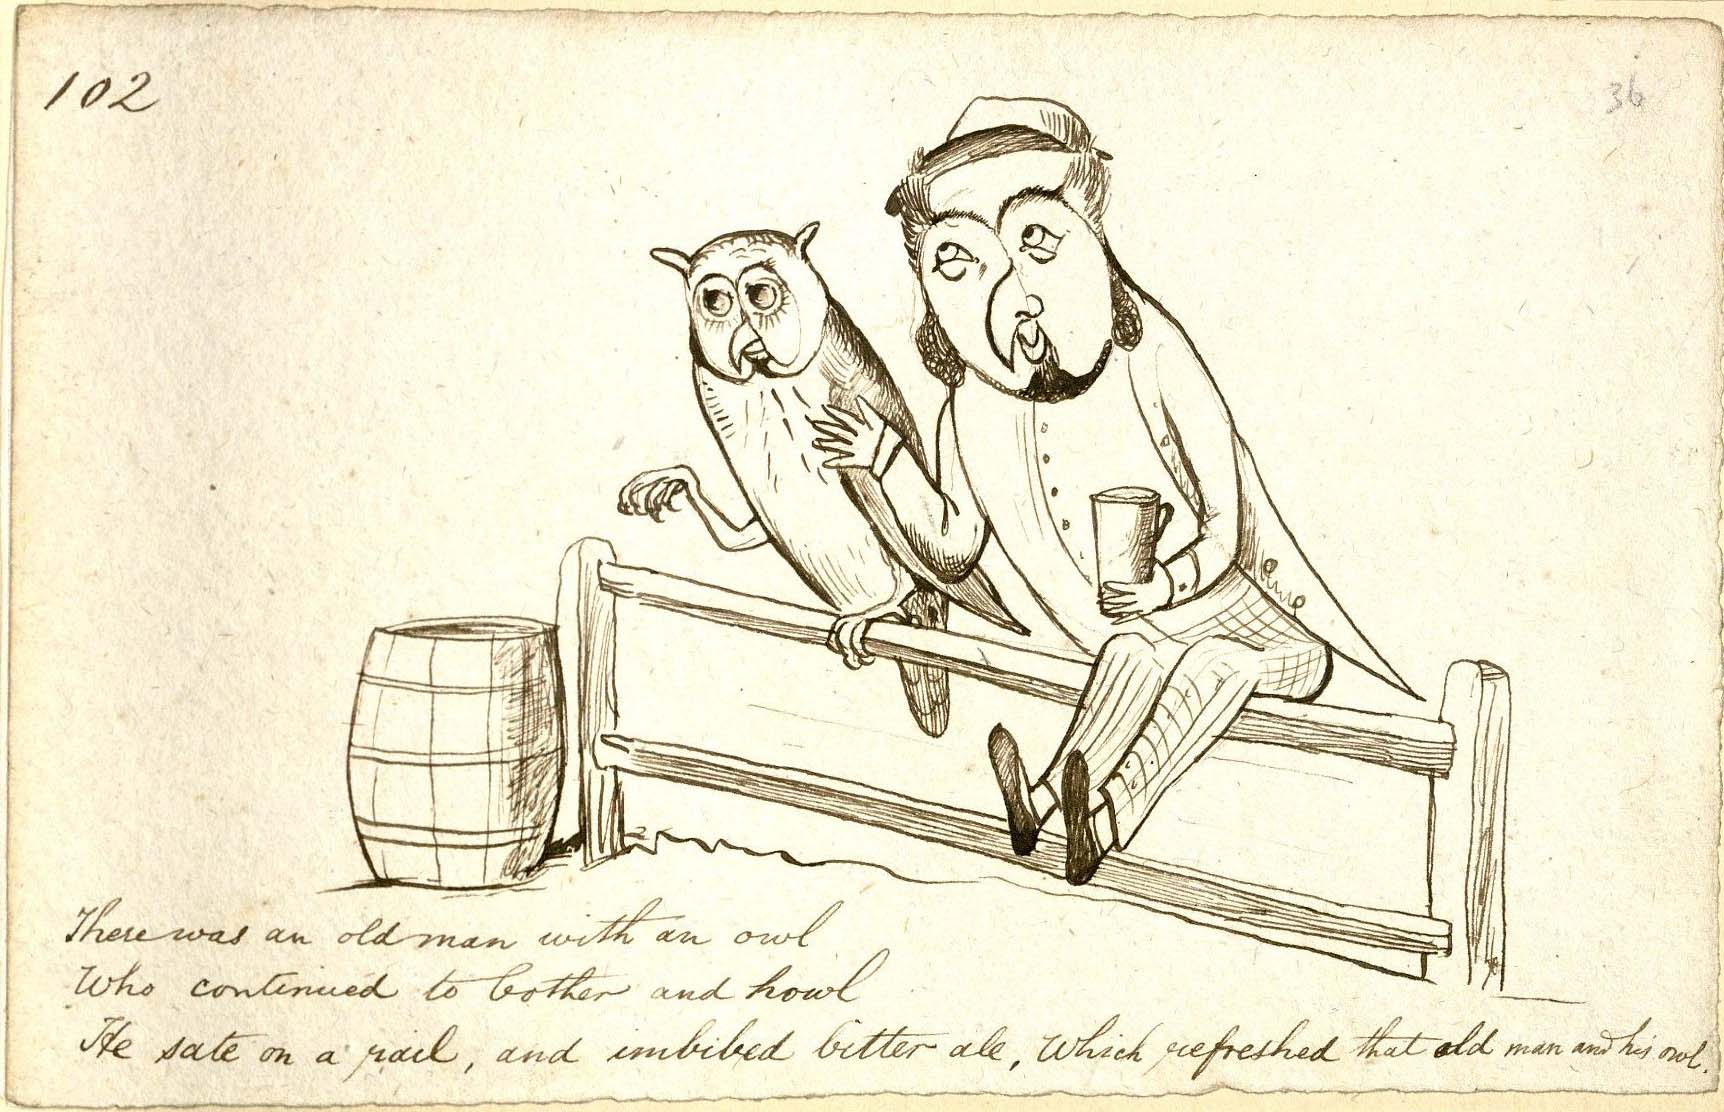 Lear, Edward, 1812-1888. There was an old man with an owl. MS Typ 55 (36)